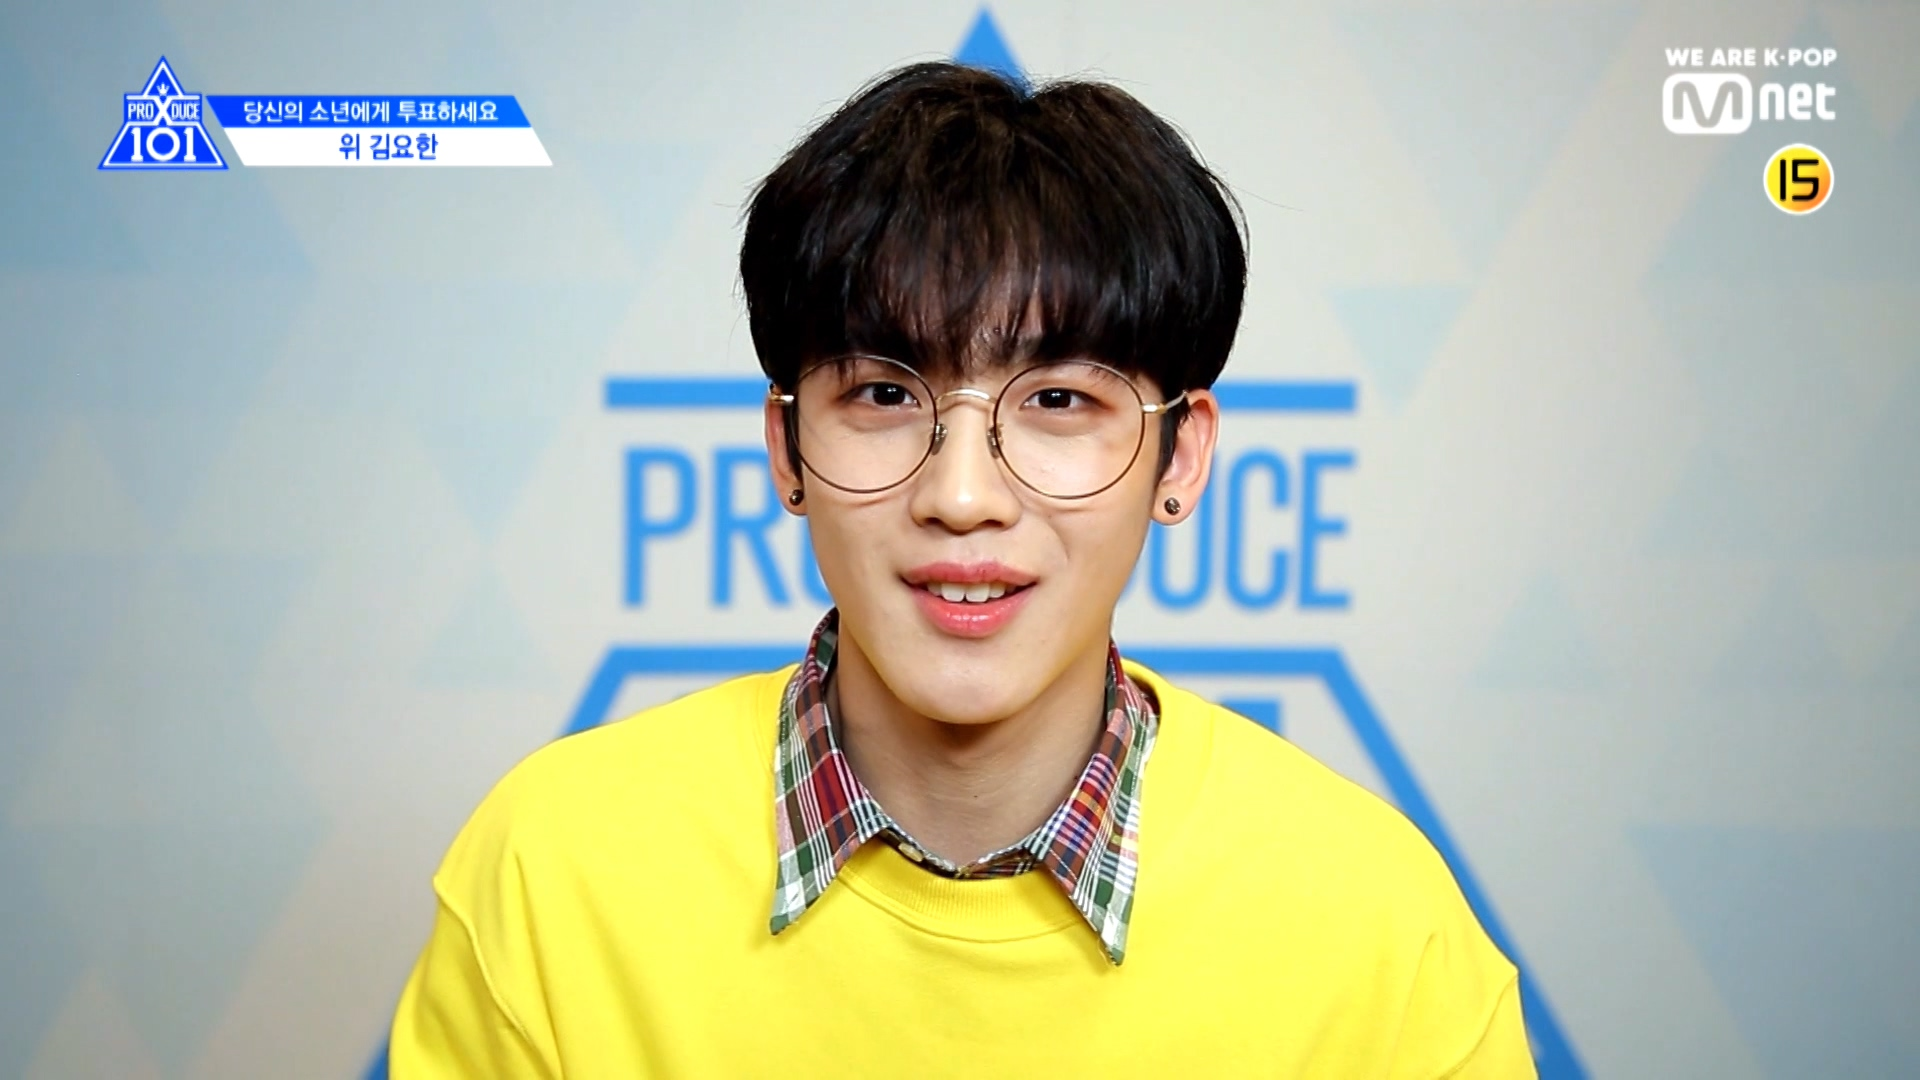 [PRODUCE X 101] EYE CONTACT CHALLENGE l KIM YO HAN(OUI)